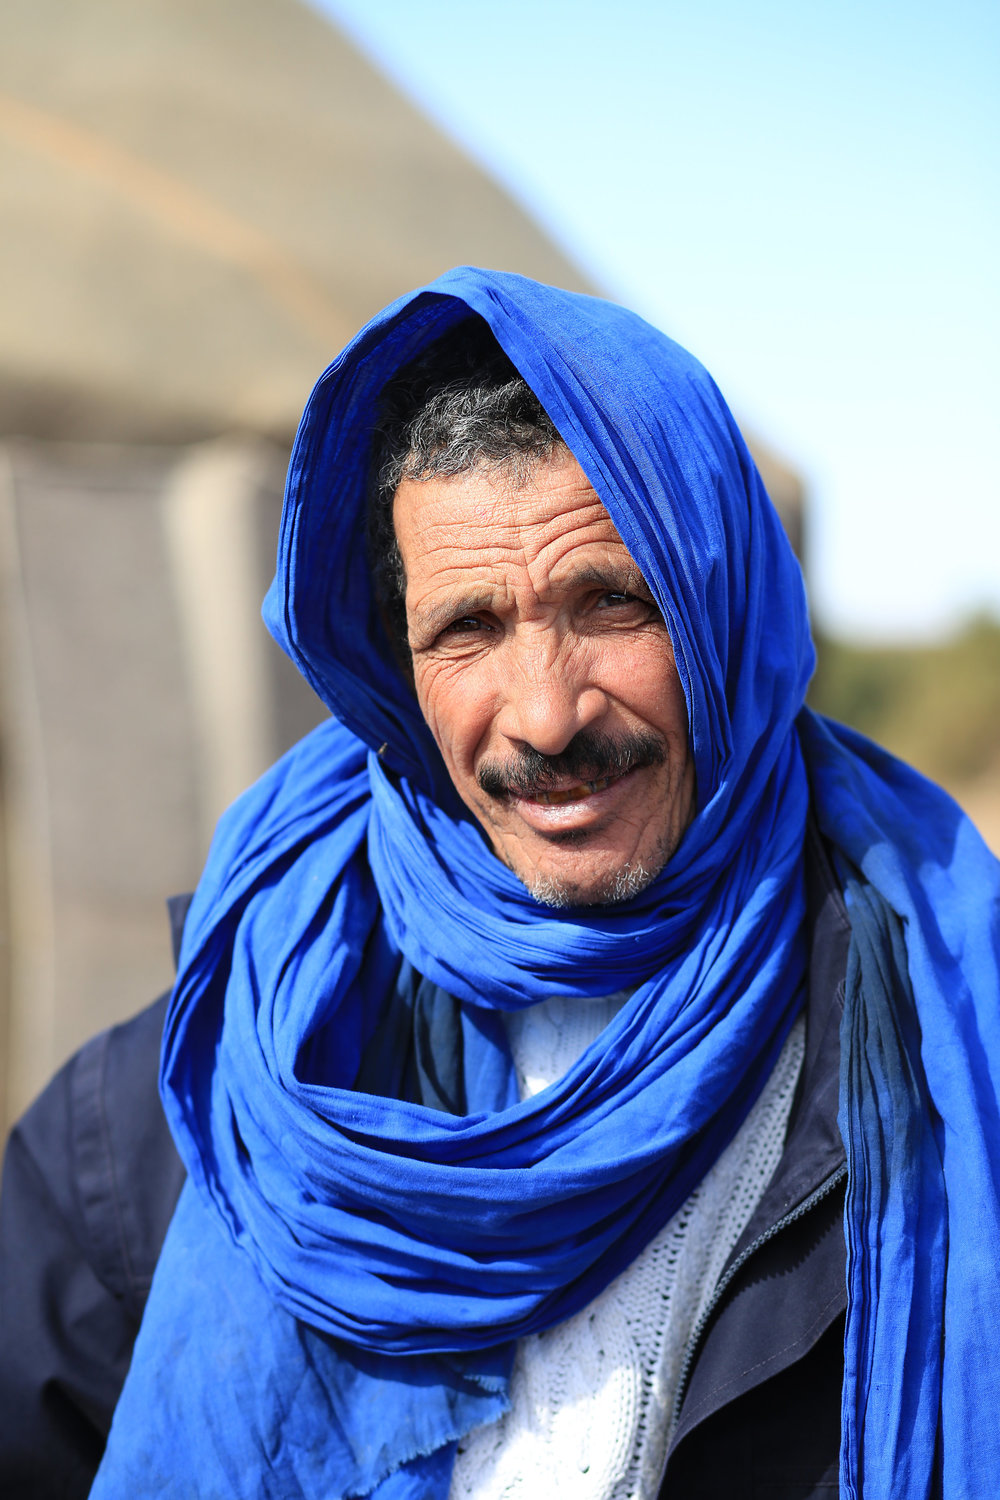 Man+in+a+Blue+Hajib.jpg